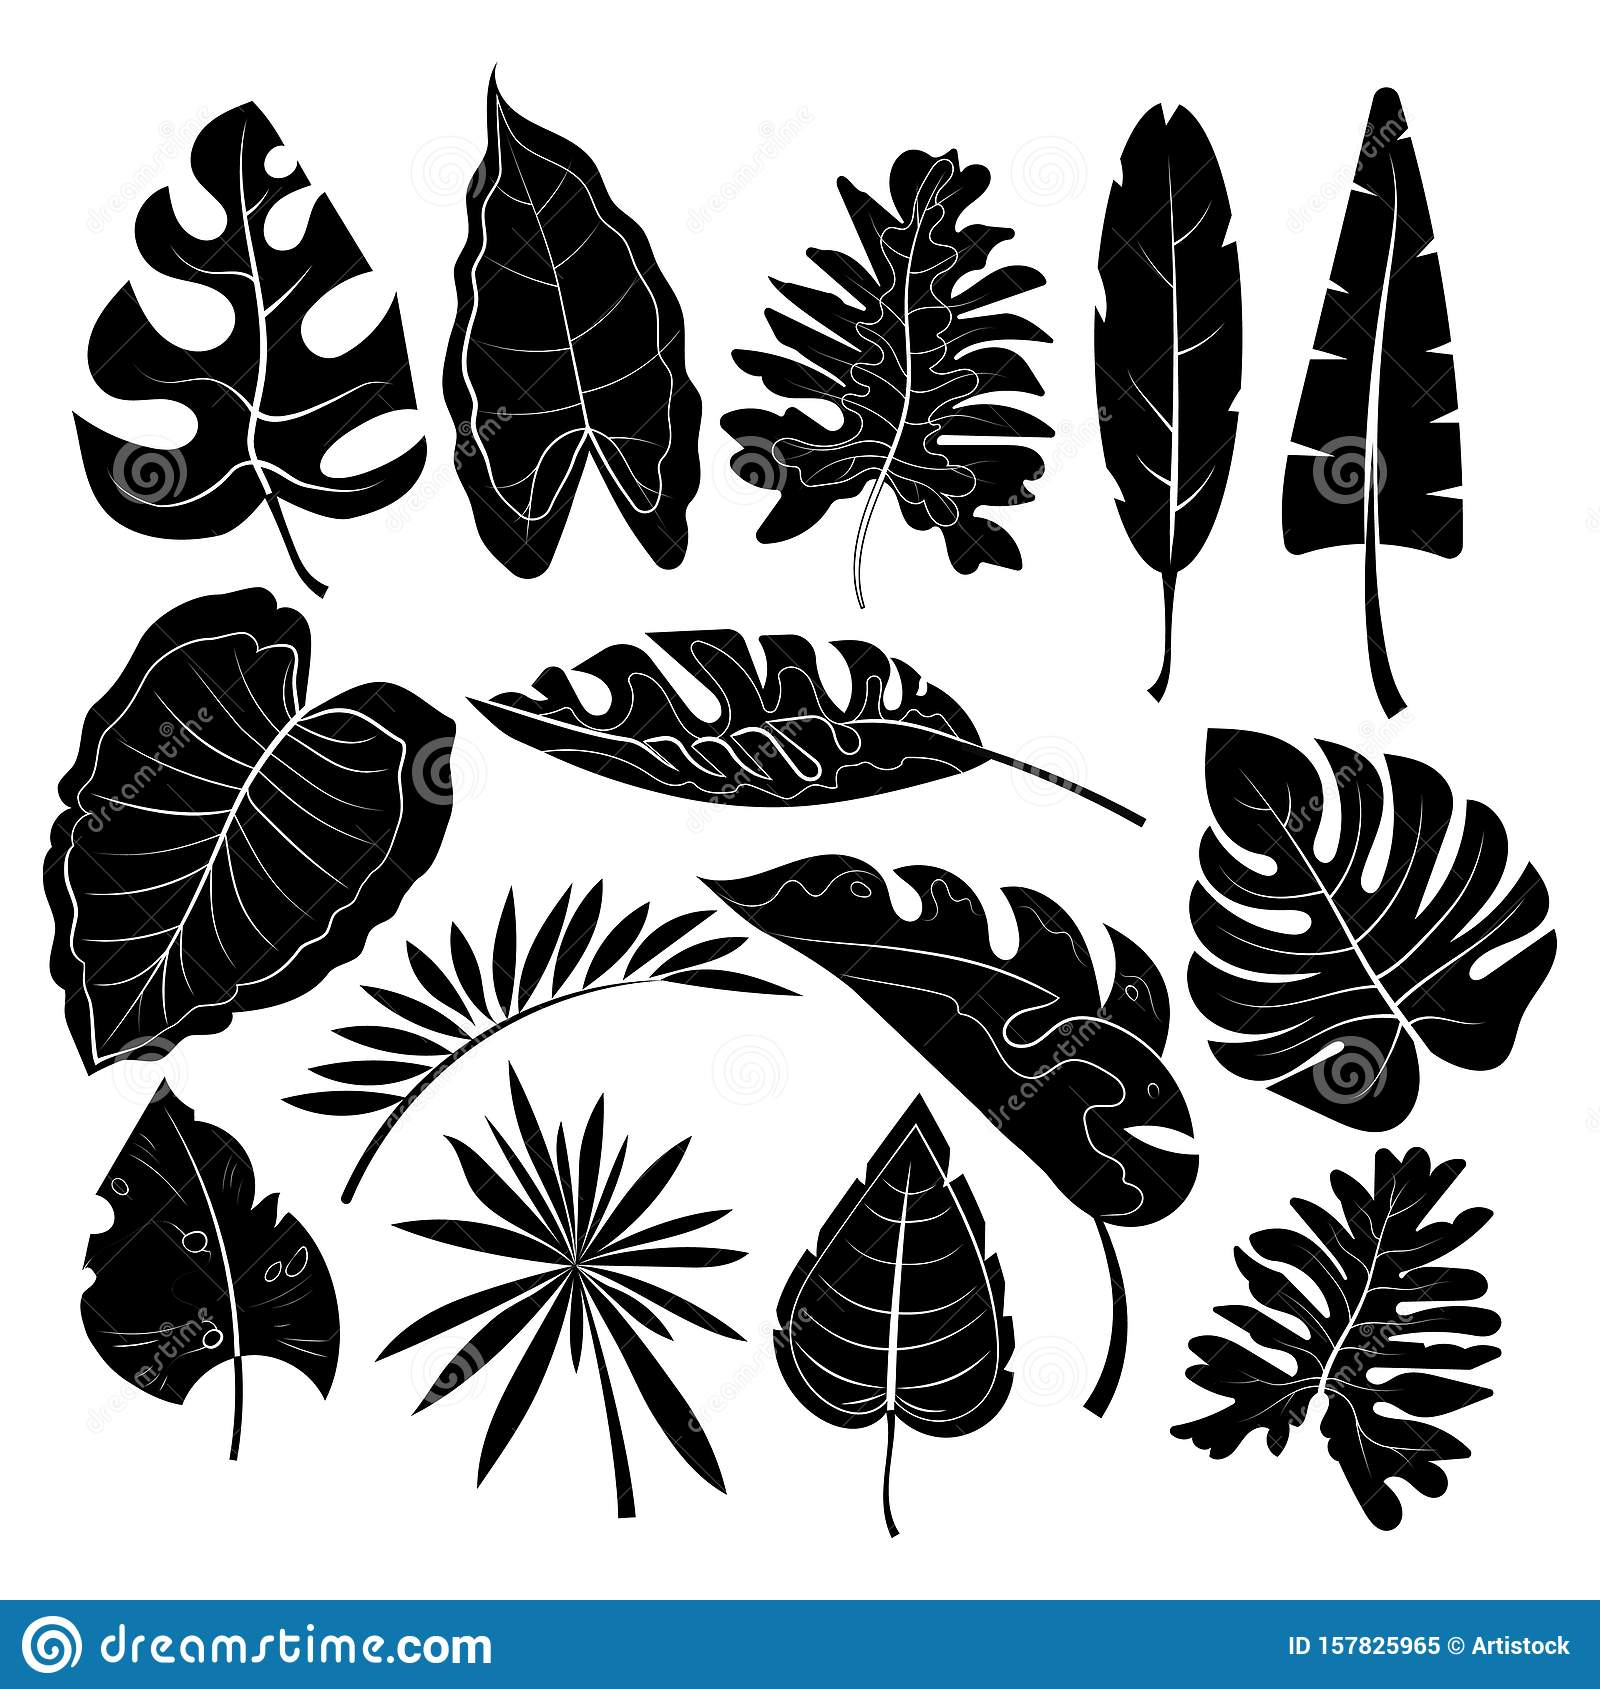 Leaves Vector Illustration Tropical Leaves Silhouettes Tropical Background Design With Exotic Palms And Plants Stock Vector Illustration Of Beach Decorative 157825965 The best selection of royalty free tropical leaves vector art, graphics and stock illustrations. https www dreamstime com leaves vector illustration tropical leaves silhouettes tropical background design exotic palms plants leaves vector image157825965